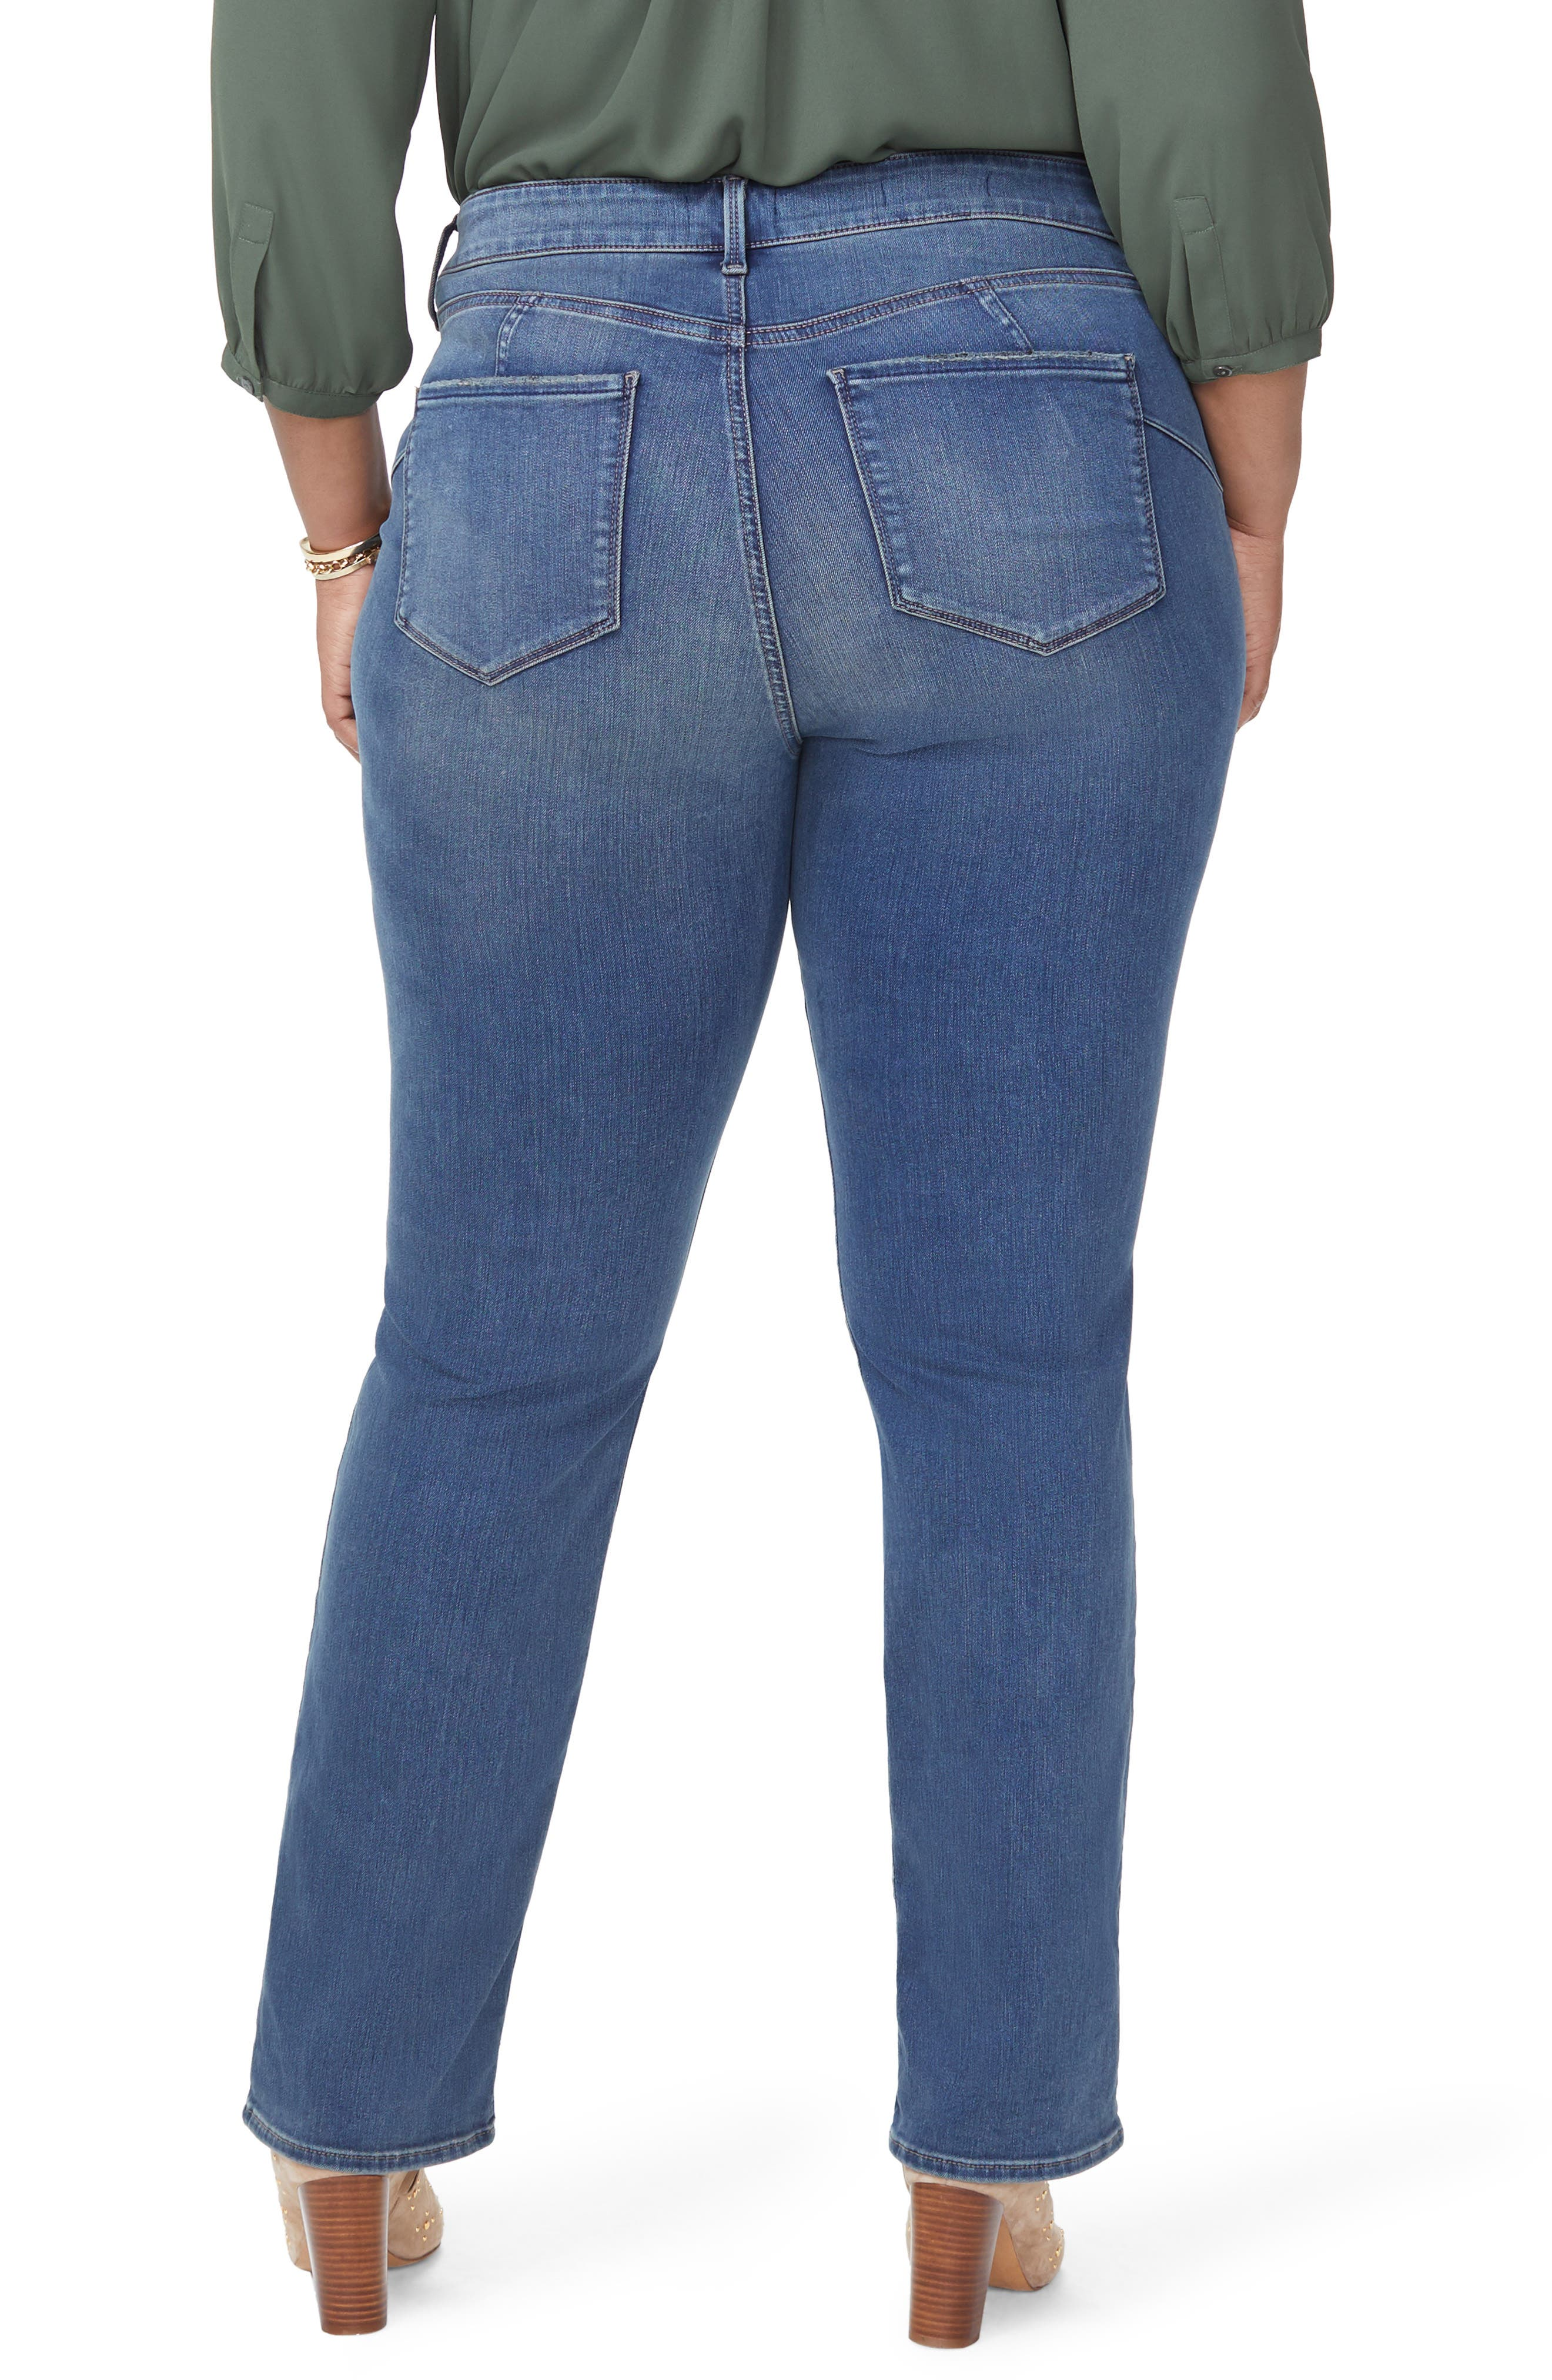 Marilyn Uplift Straight Leg Jeans,                             Alternate thumbnail 2, color,                             FERRIS